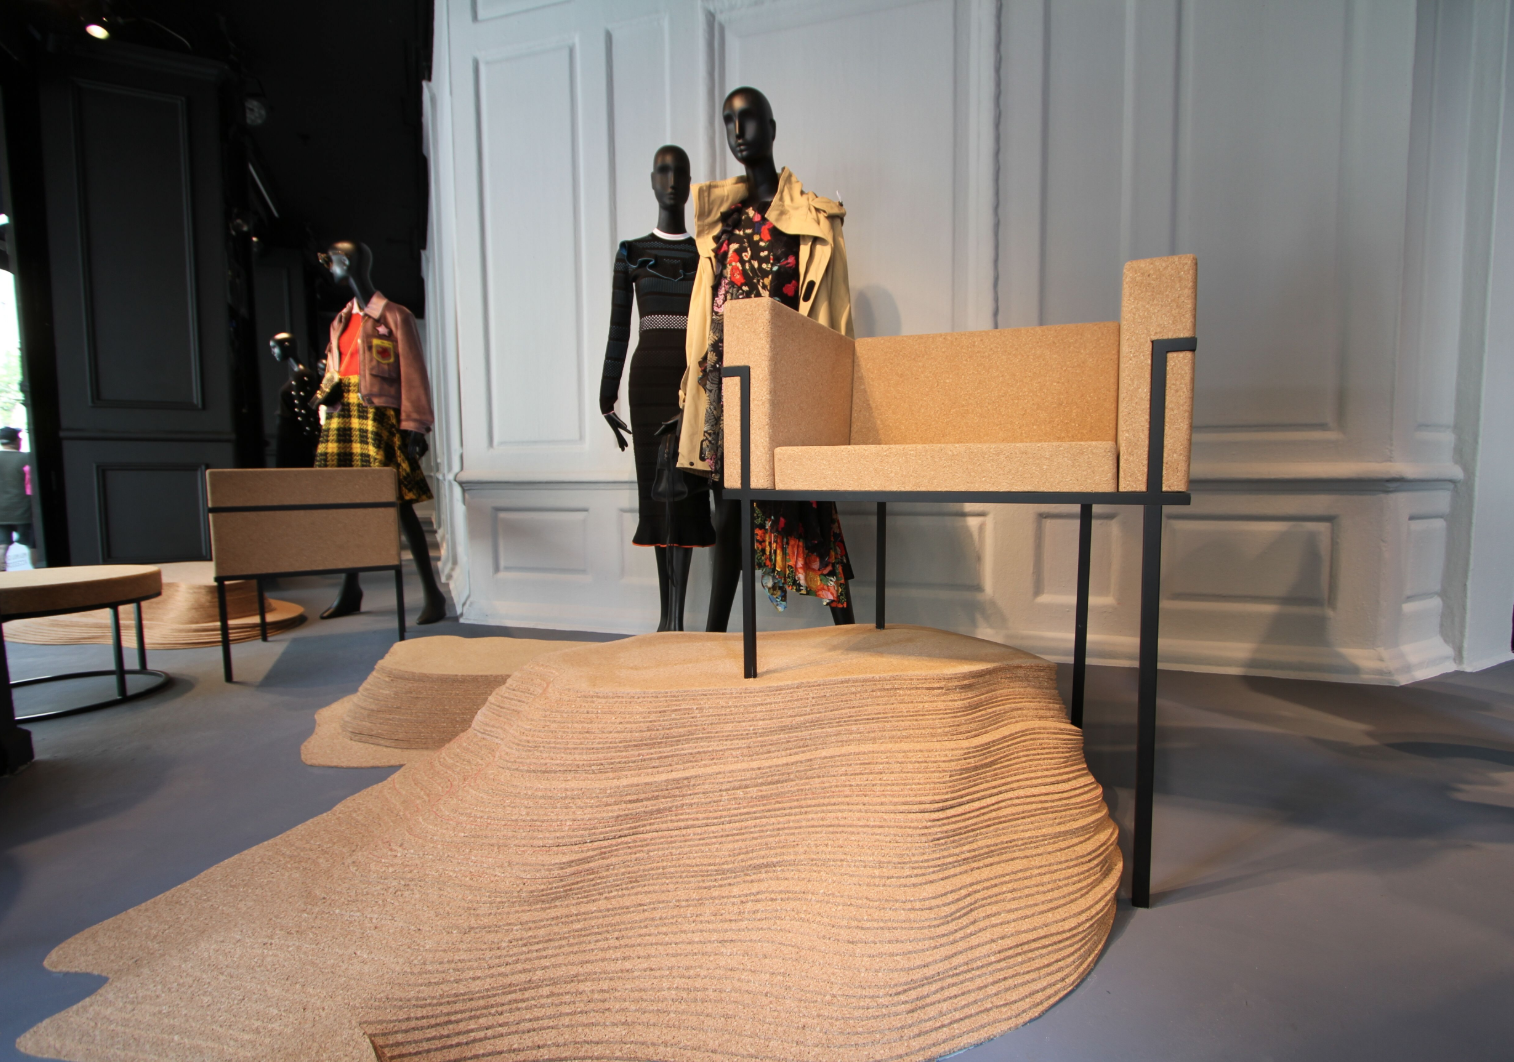 Eugene Stoltzfus develops unique seating, tables, beds, and more usinginventive materials like cork; shown is the Lisbon Side Chair.